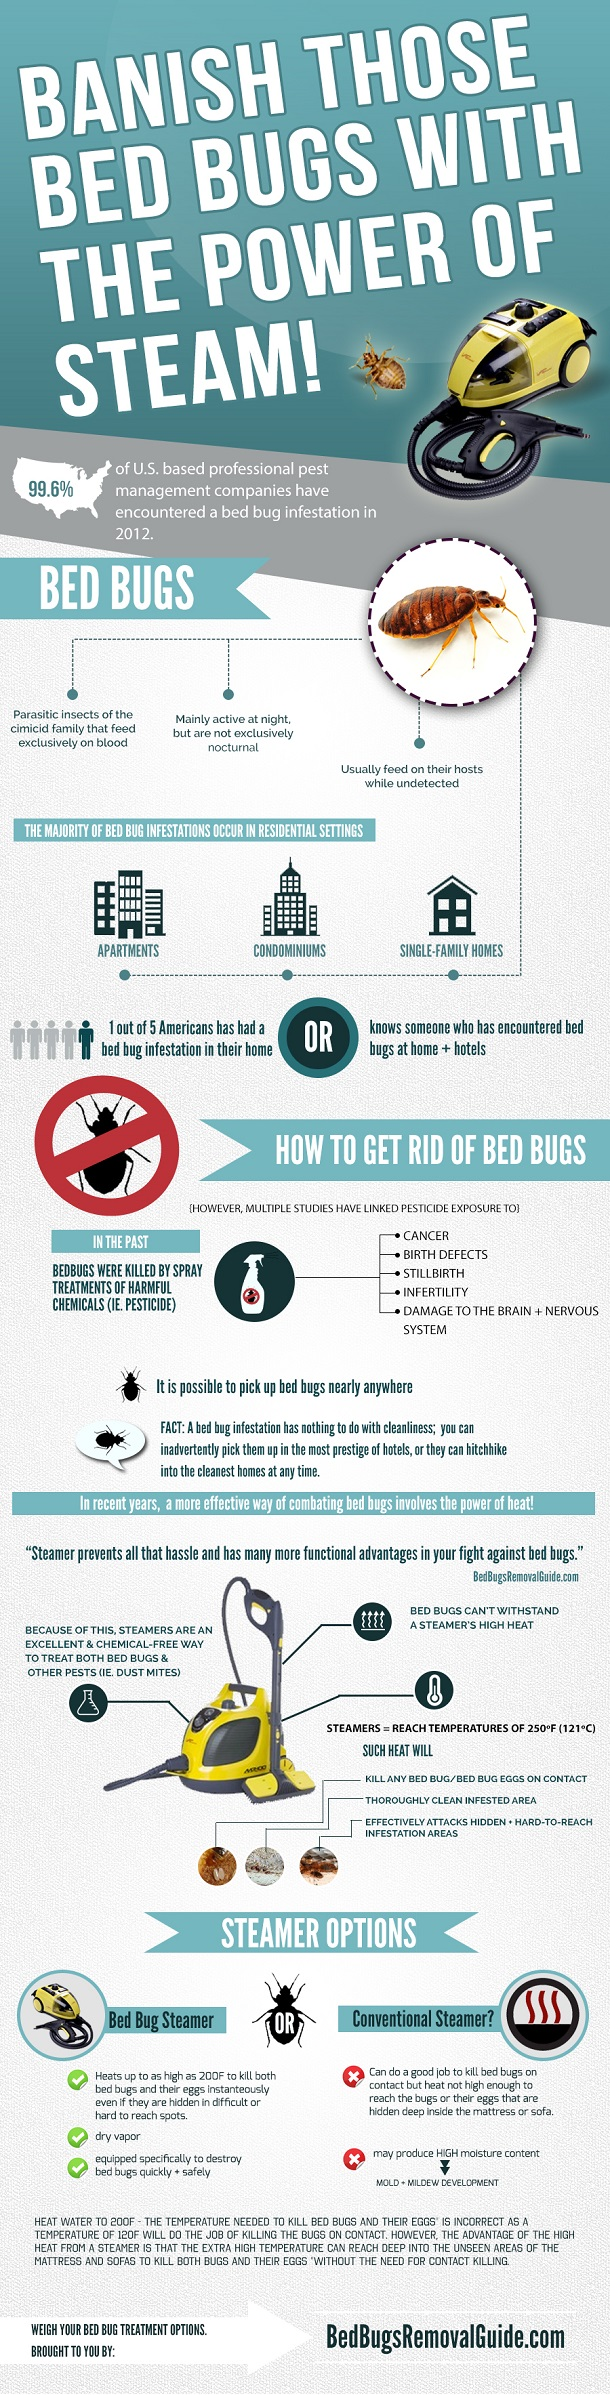 Banish Those Bed Bugs With The Power of Steam